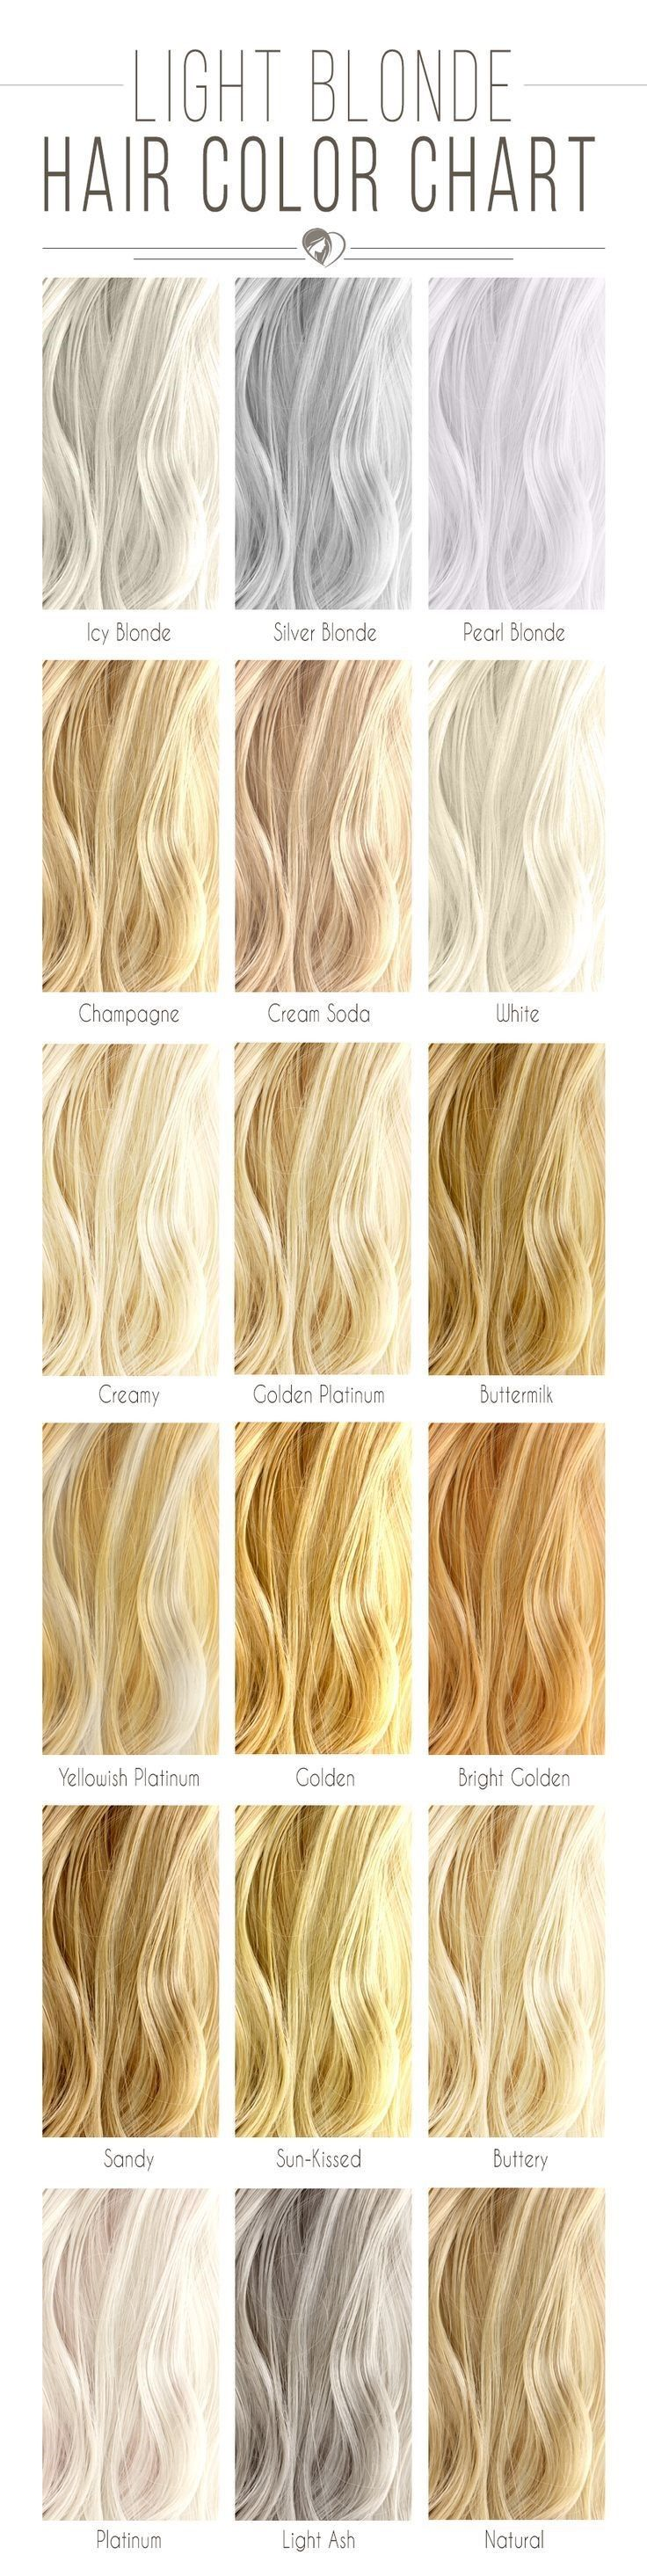 30 Greatest Blonde Hair Color Ideas For 2017 Hairstylist Copperhair Gold Blonde Hair Color Chart Hair Color Chart Hair Chart